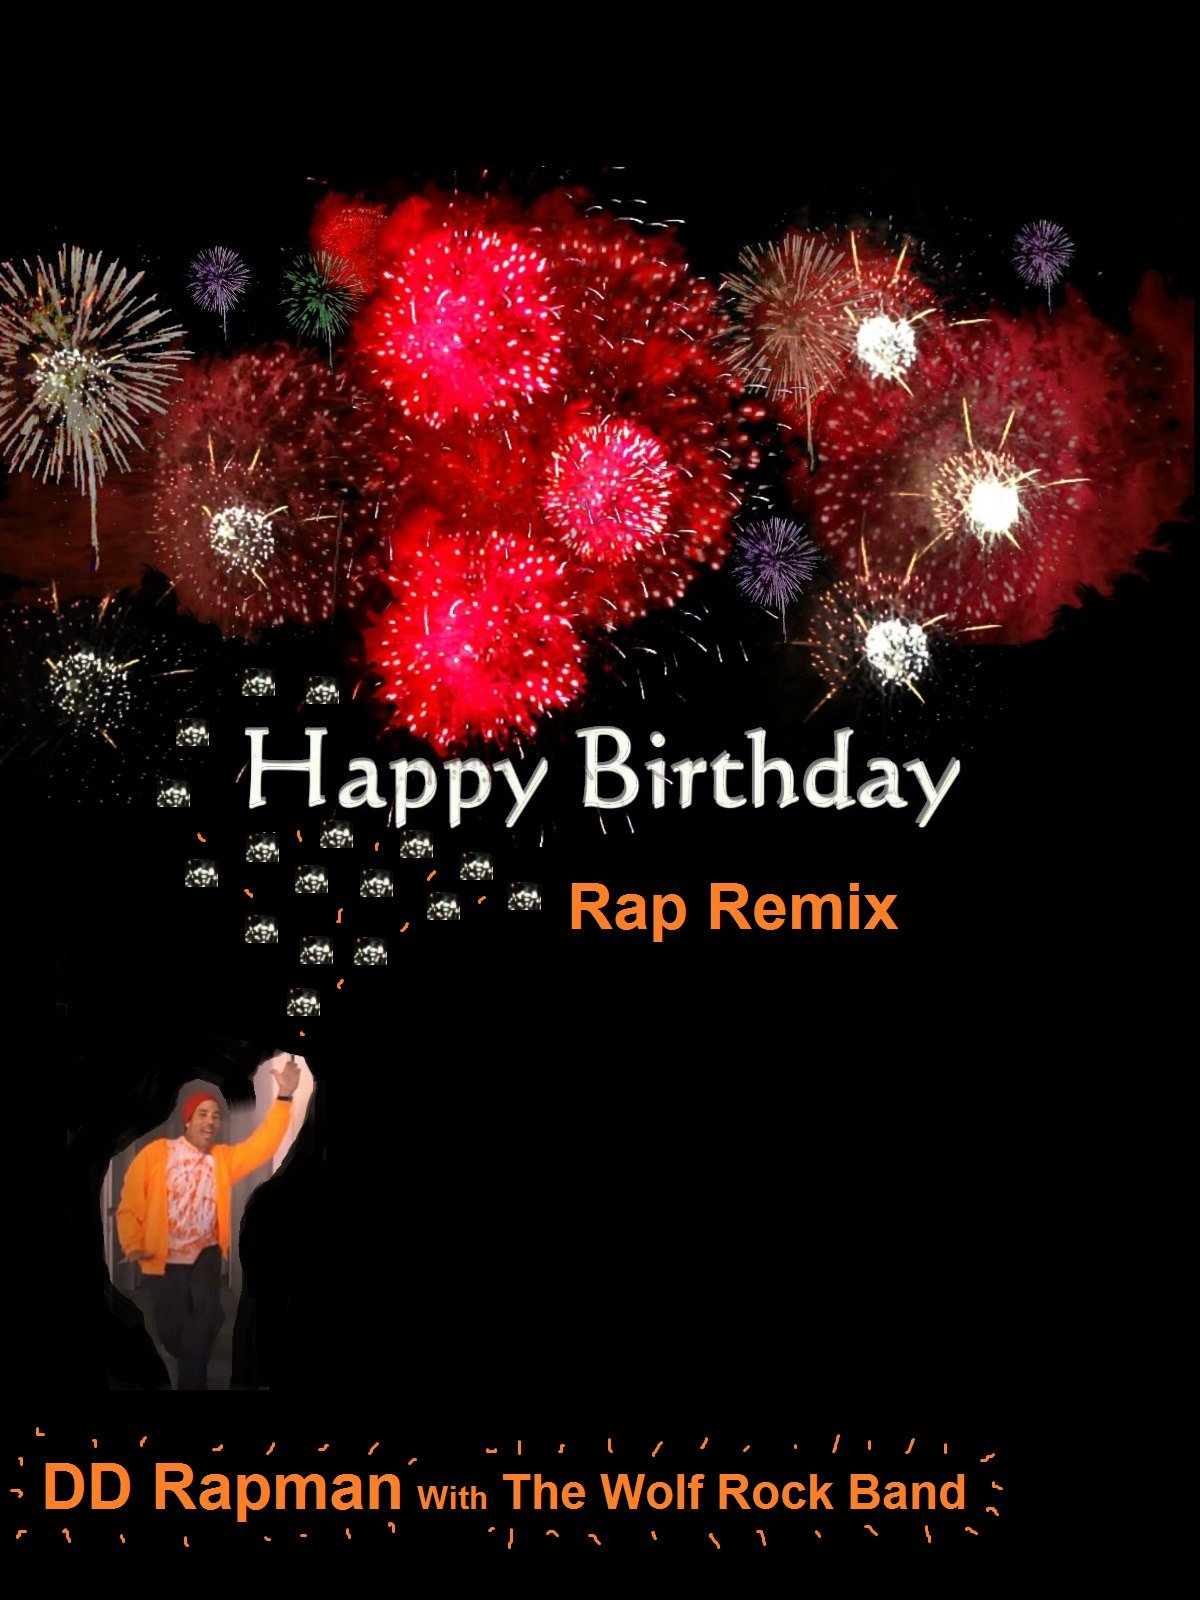 Amazon Co Jp Happy Birthday Rap Remix Fireworks Greeting Card Hip Hop Happy Birthday Song Funny Birthday Card With Rap Music Dd Rapman With The Wolf Rock Bandを観る Prime Video